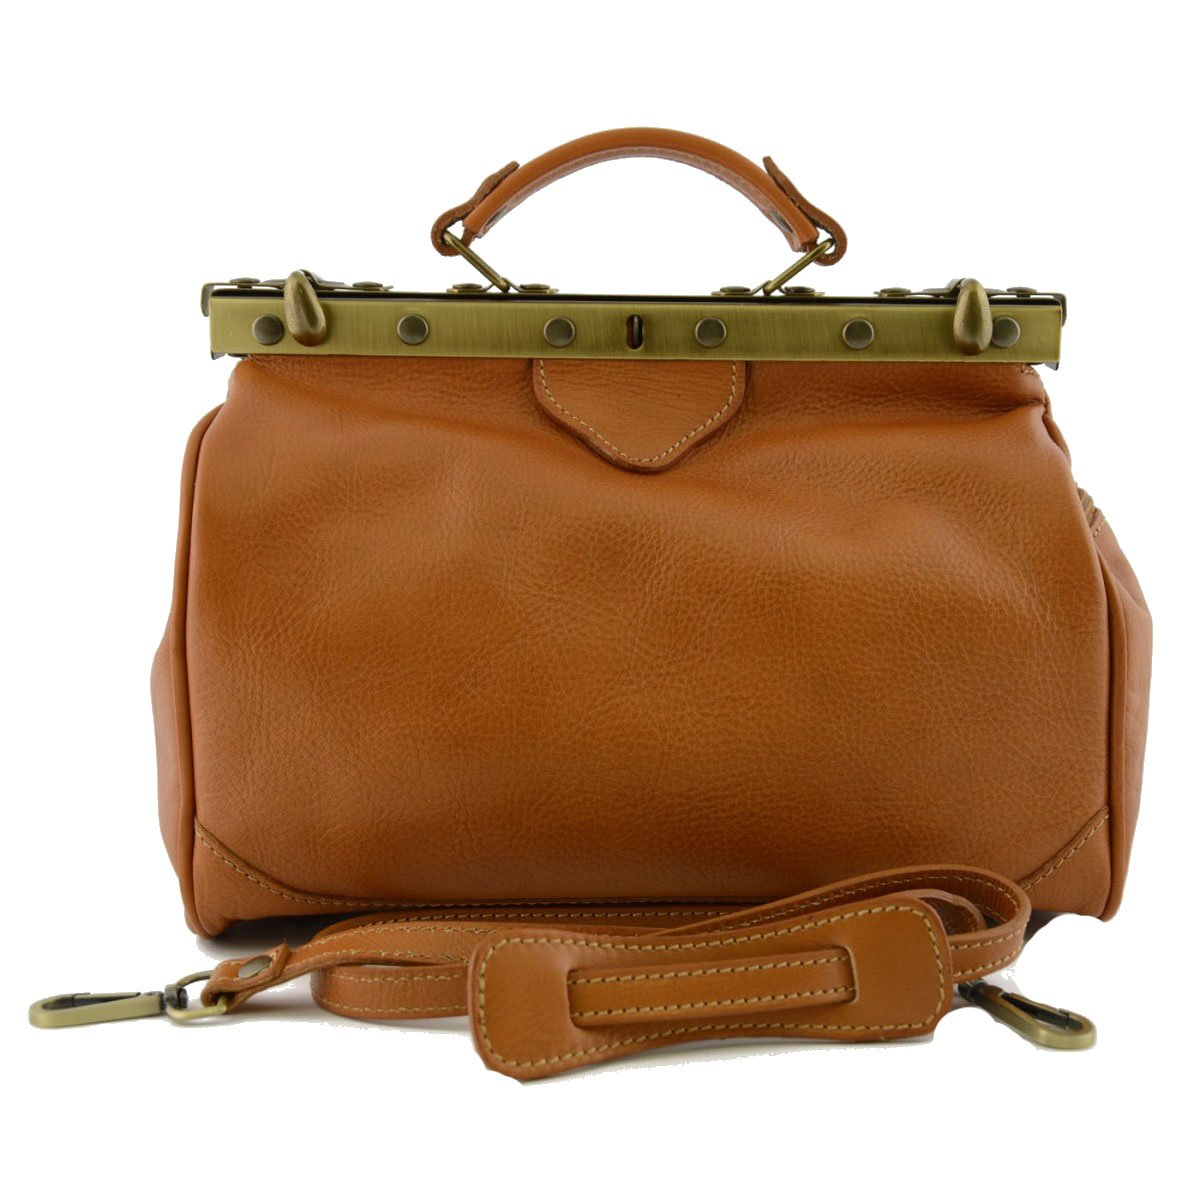 Made In Italy Genuine Leather Bag For Doctor Color Honey - Business Bag   B01GWJ71FY